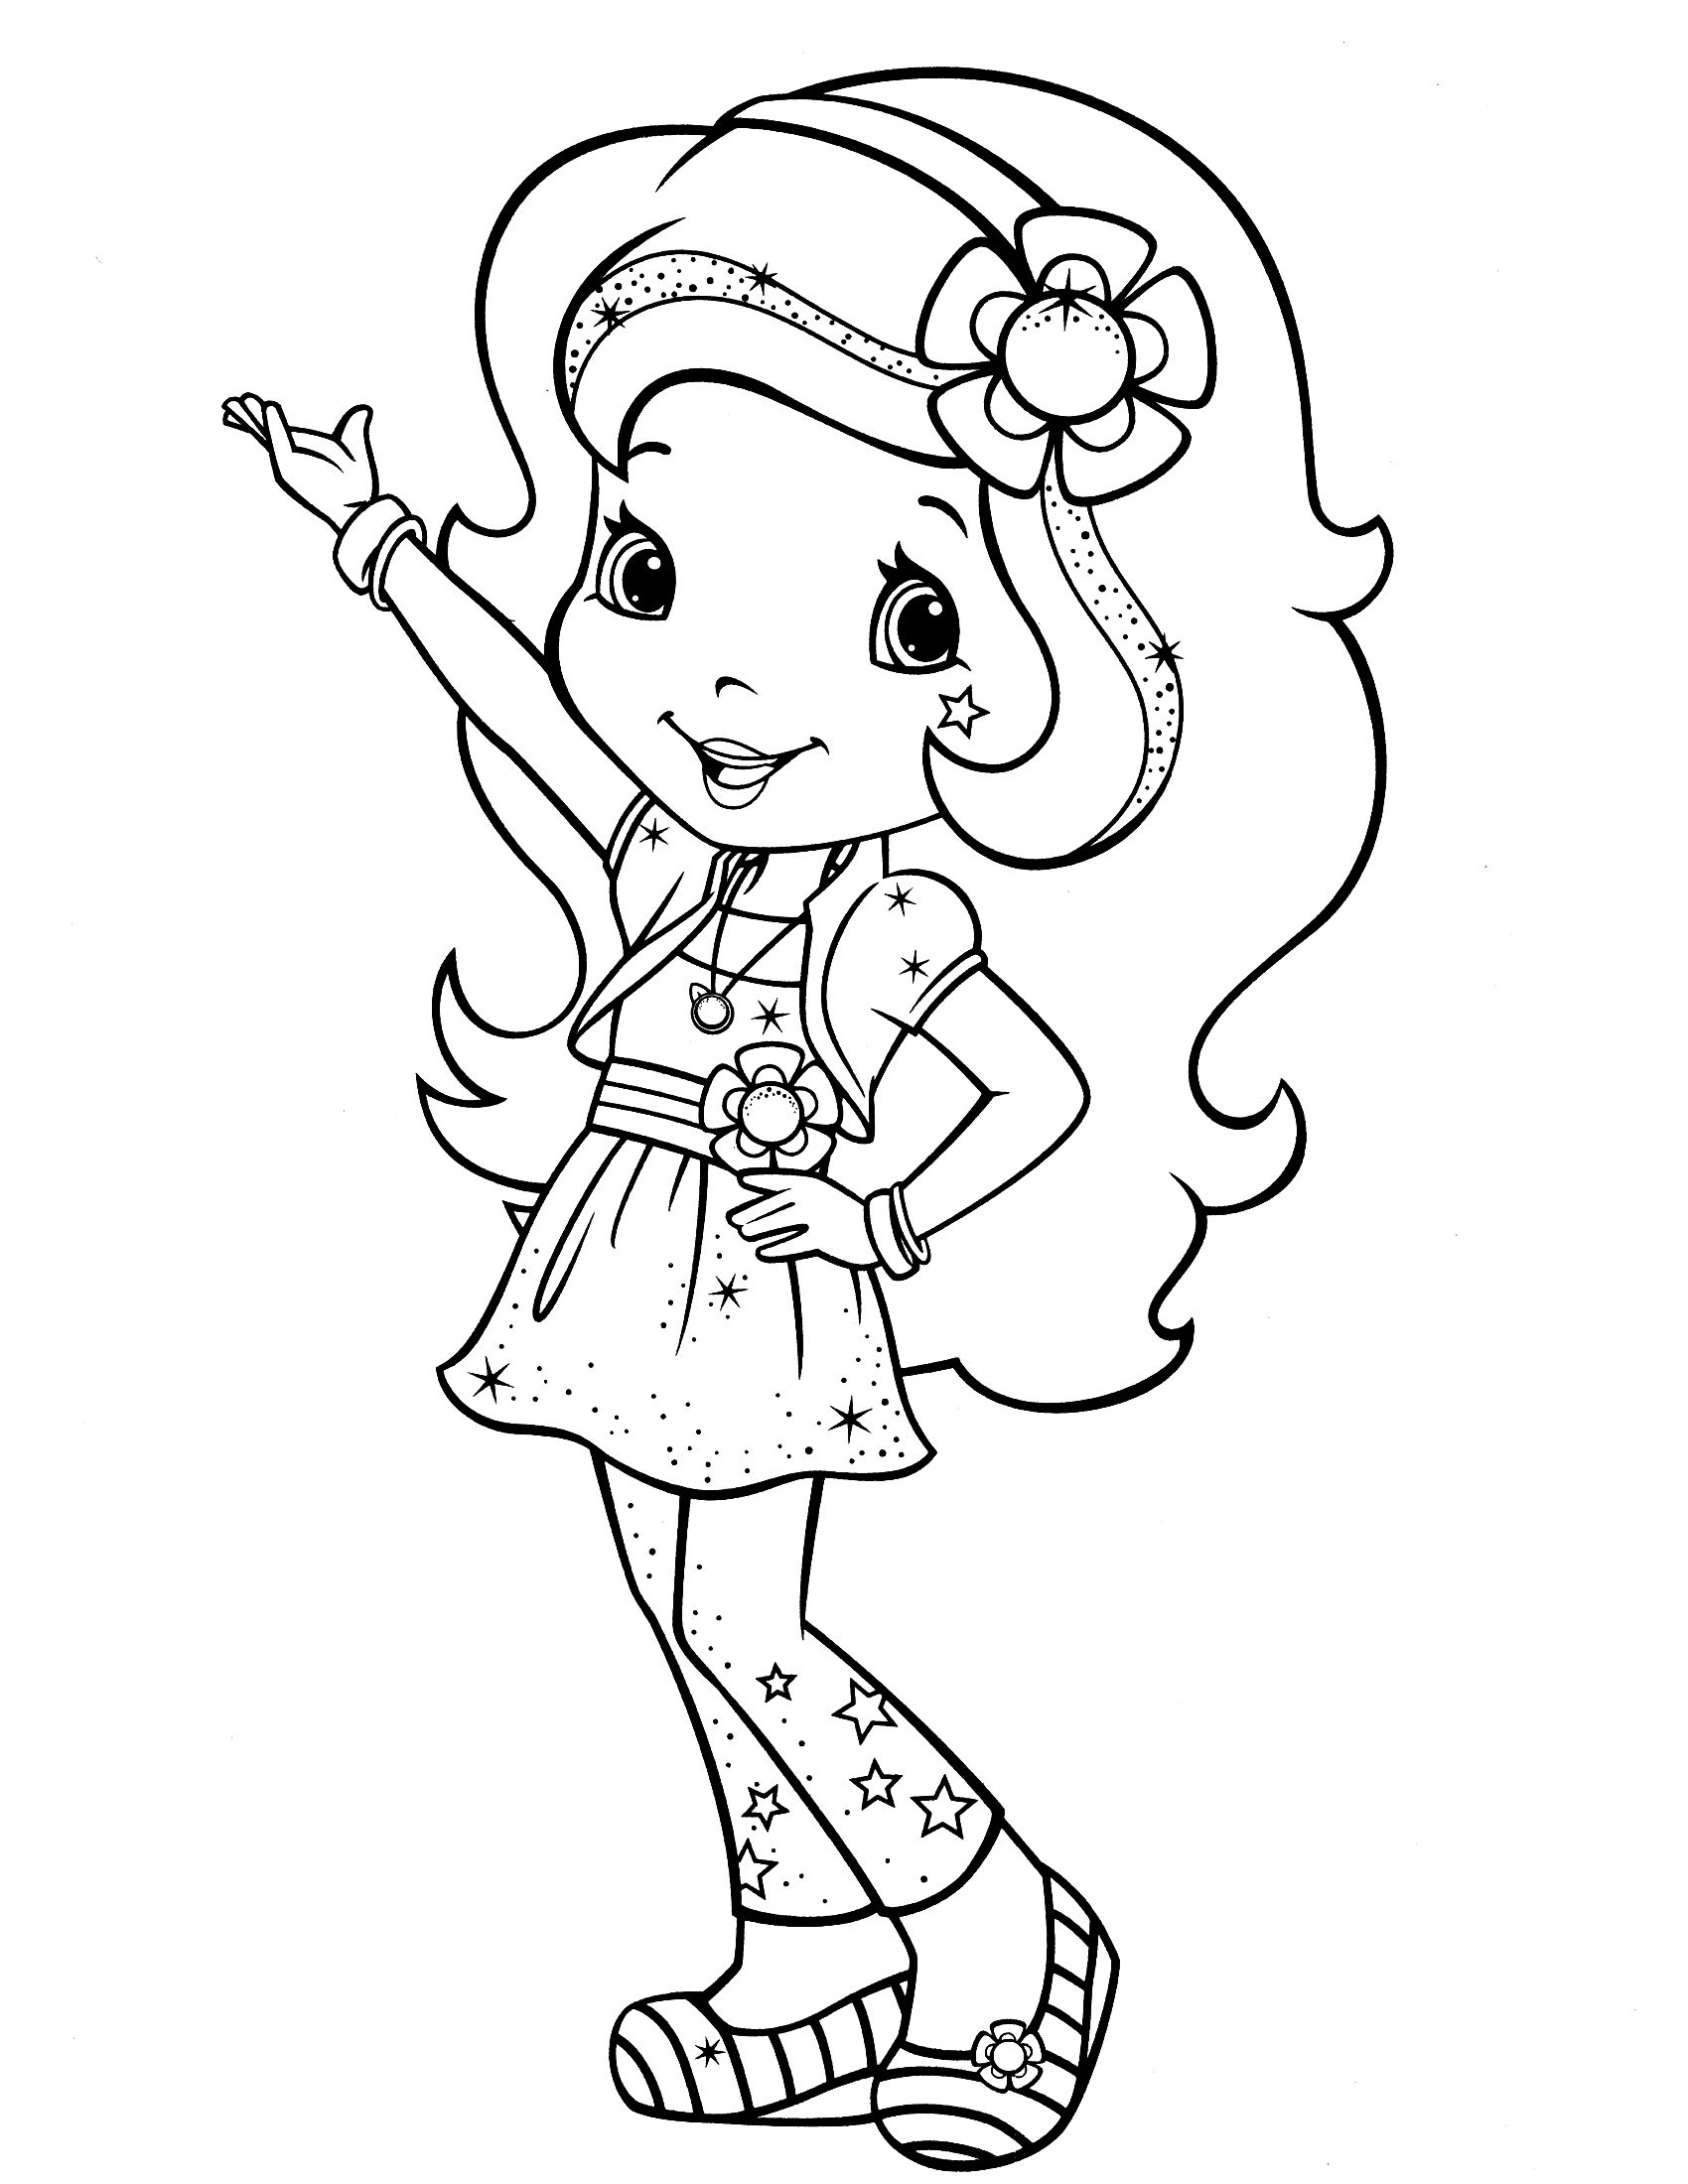 download strawberry shortcake coloring pages - Strawberry Shortcake Coloring Pages